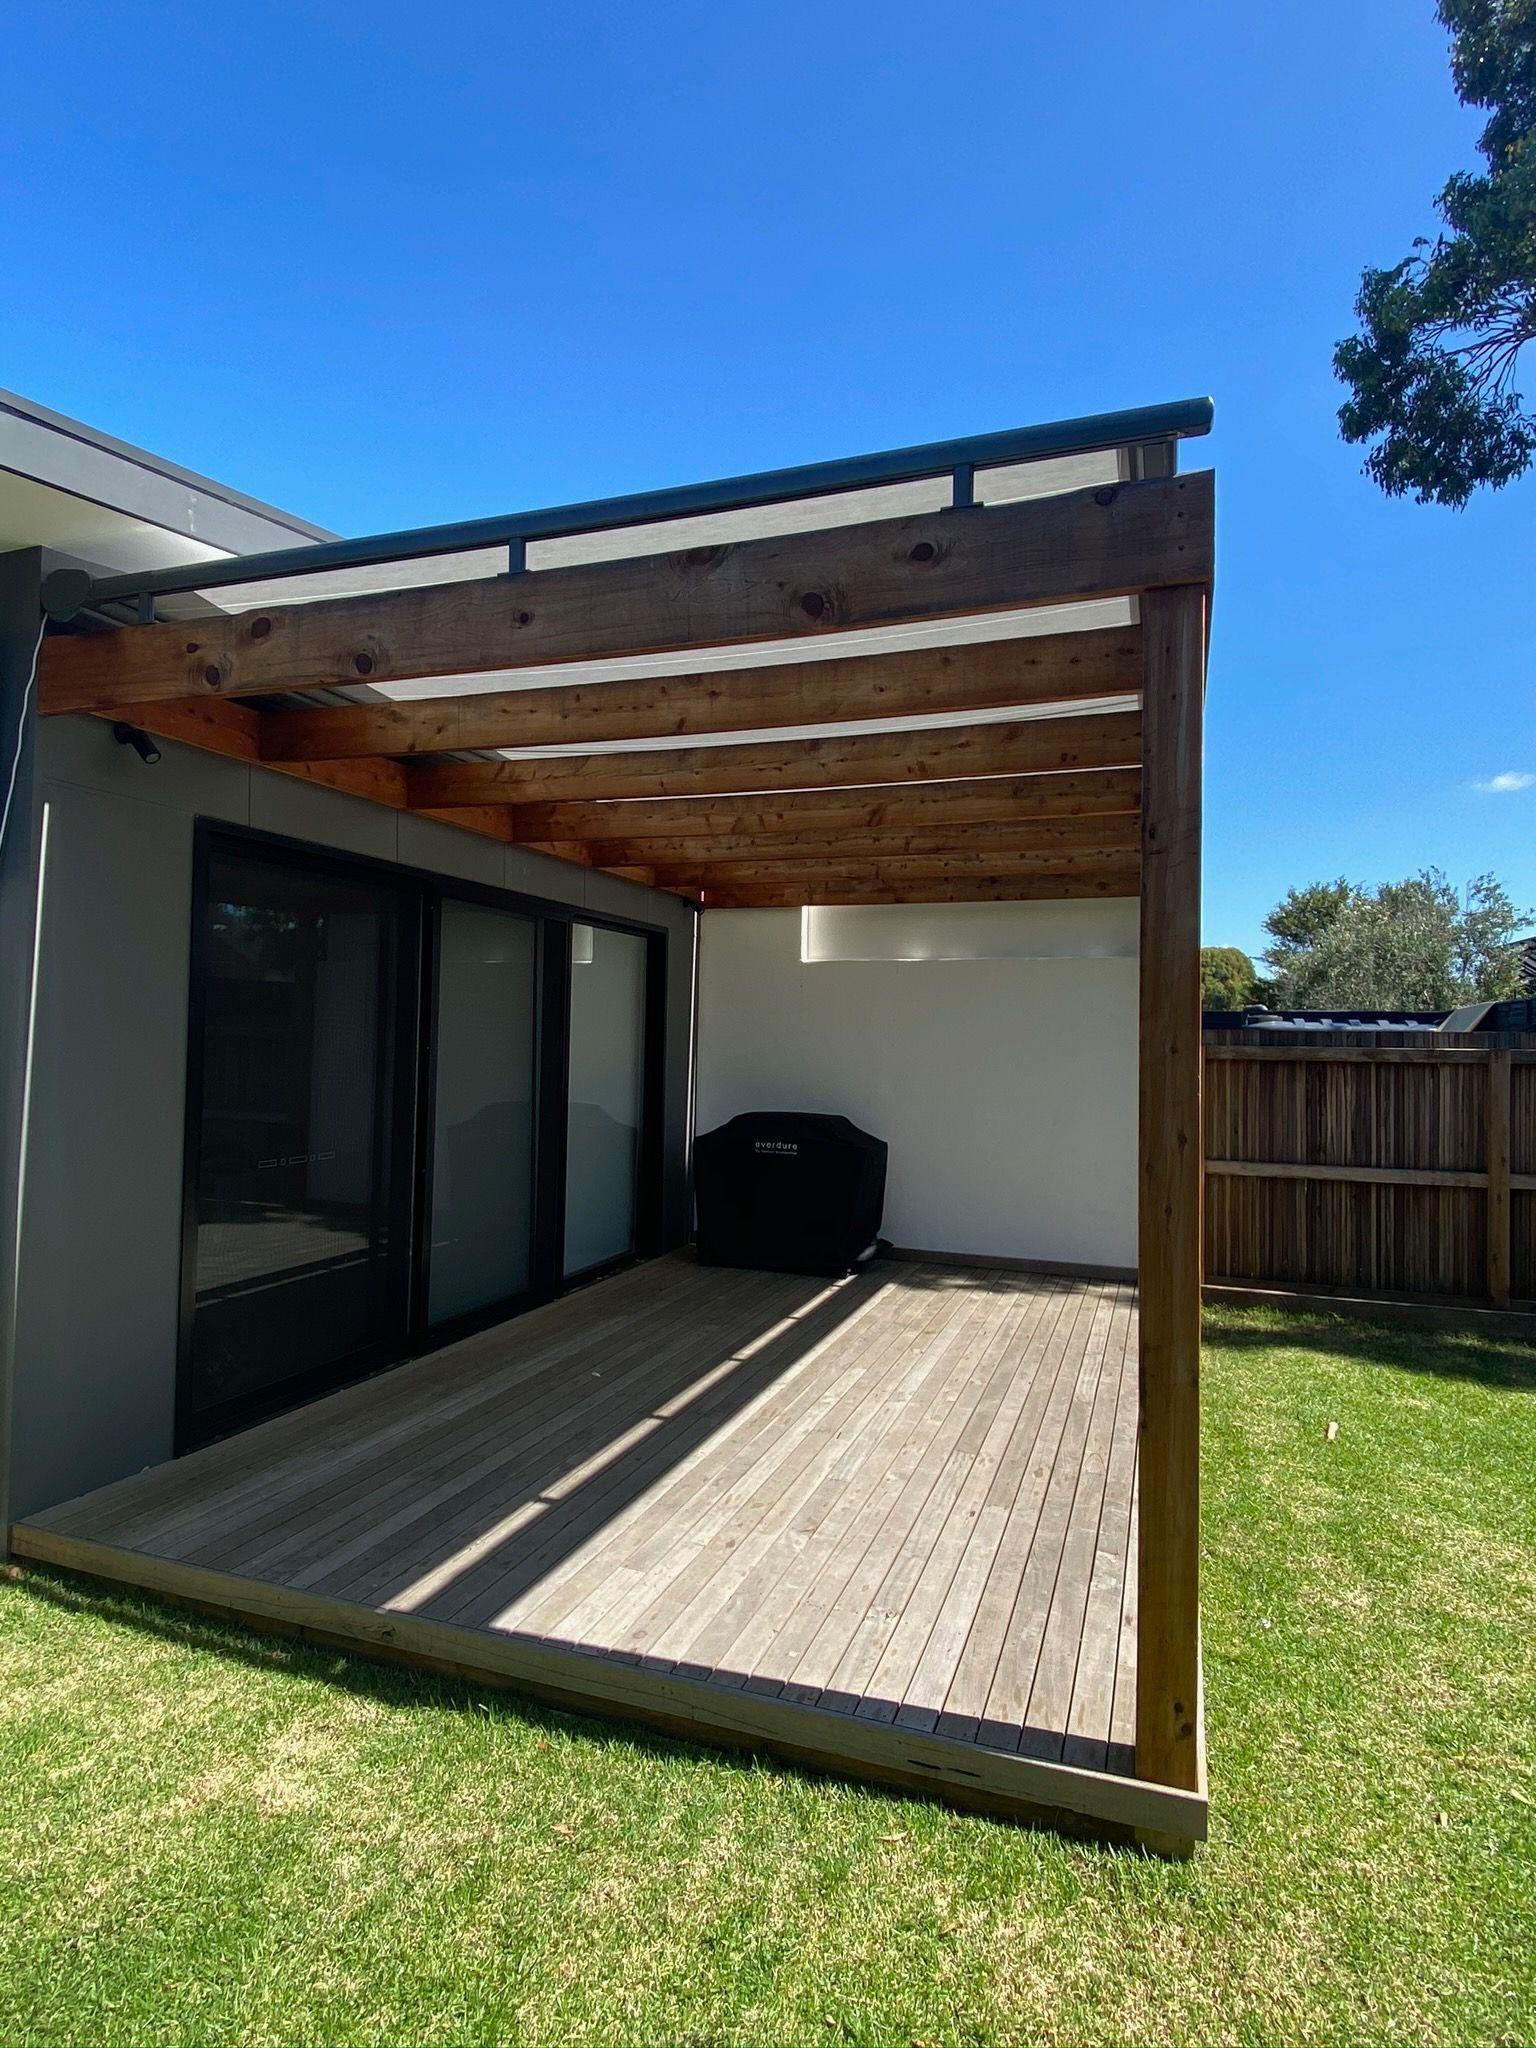 Retractable Patio Awnings This One Was Powder Coated To Match The Clients Beautiful Framed Pergola And Fully Motorized In 2020 Awning Melbourne House Outdoor Blinds